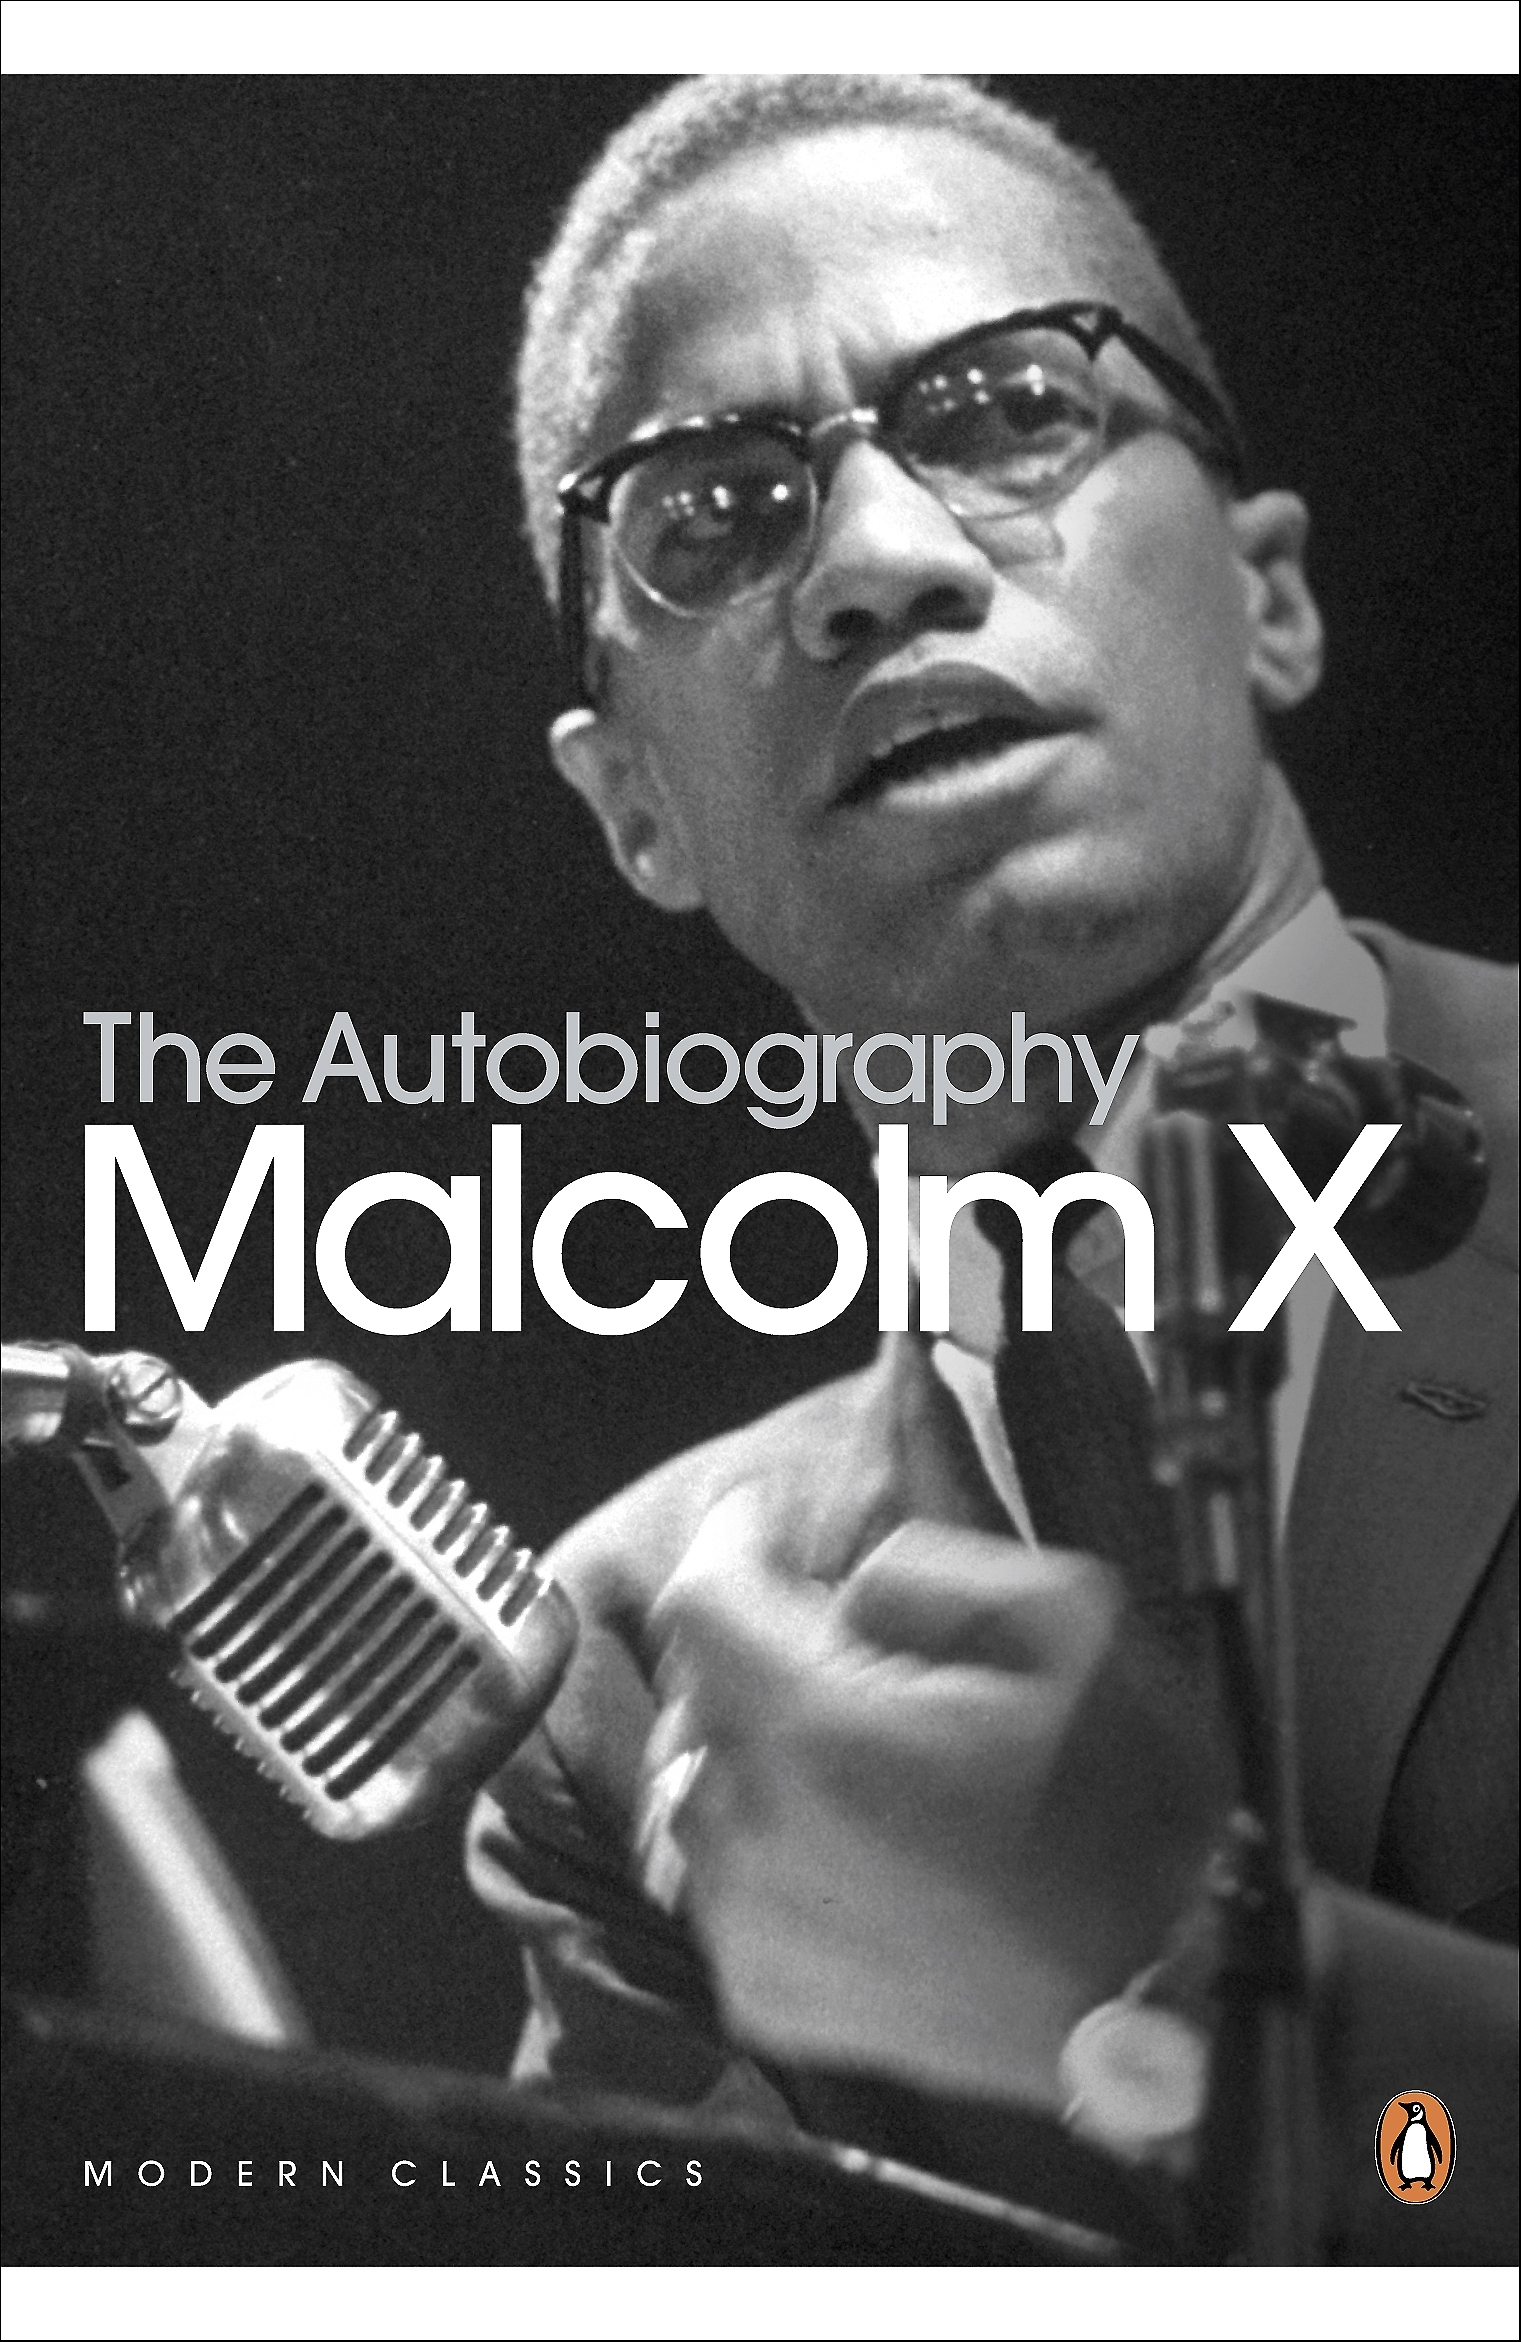 biography of malcolm x Malcolm x, writer: malcolm x malcolm x was born malcolm little on may 19, 1925, in omaha, nebraska, one of seven children his father, earl little, was a baptist preacher who supported marcus garvey's back to africa movement.